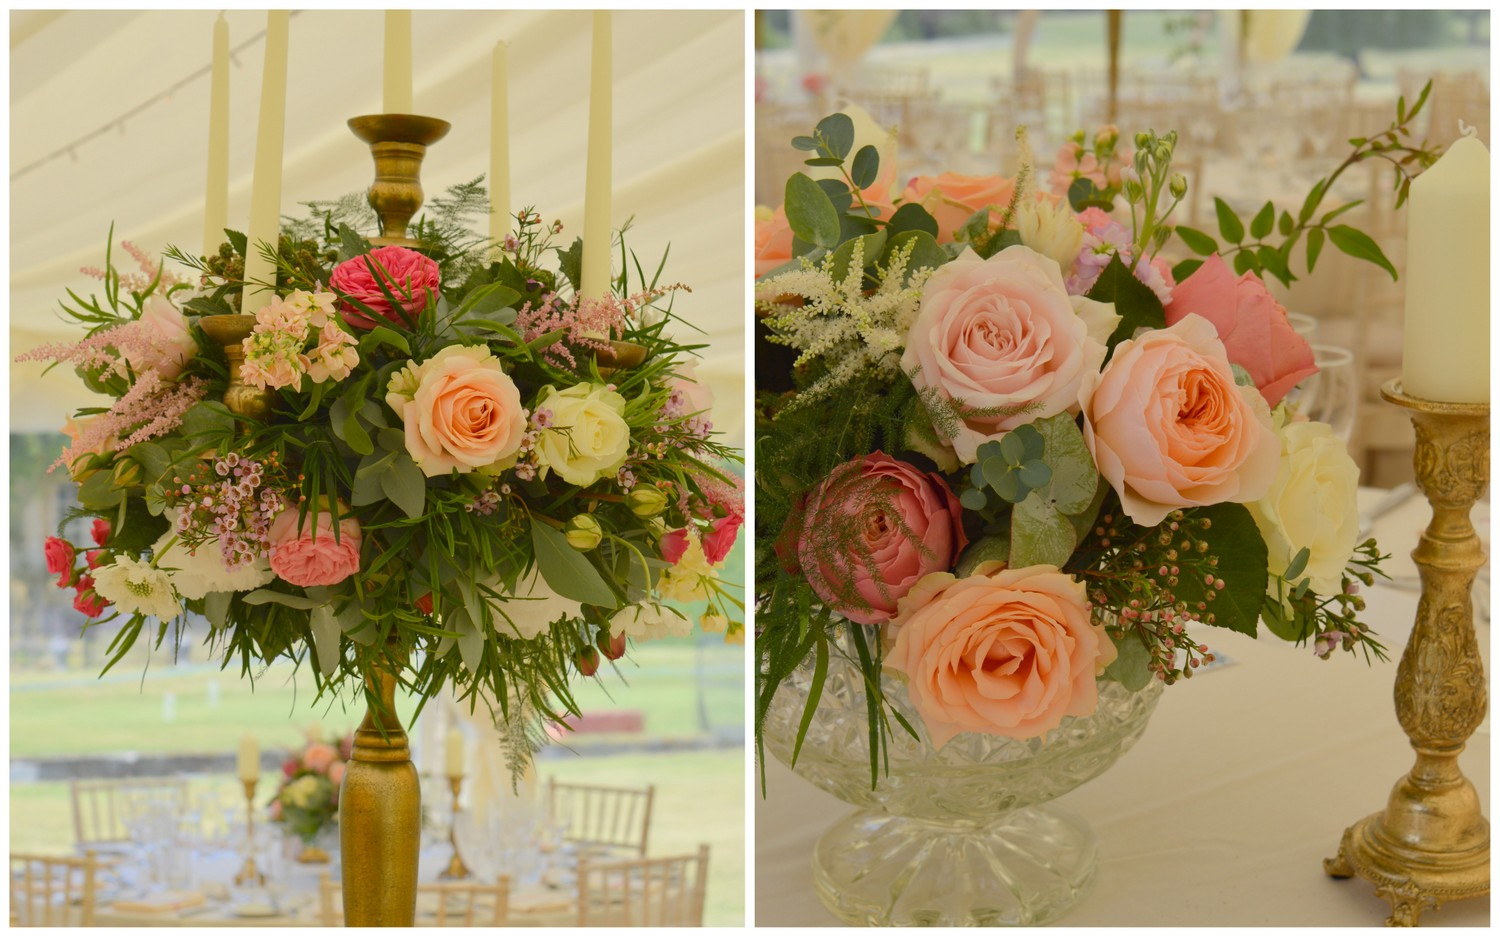 Coral, peach & blush wedding at Courteenhall, Northamptonshire